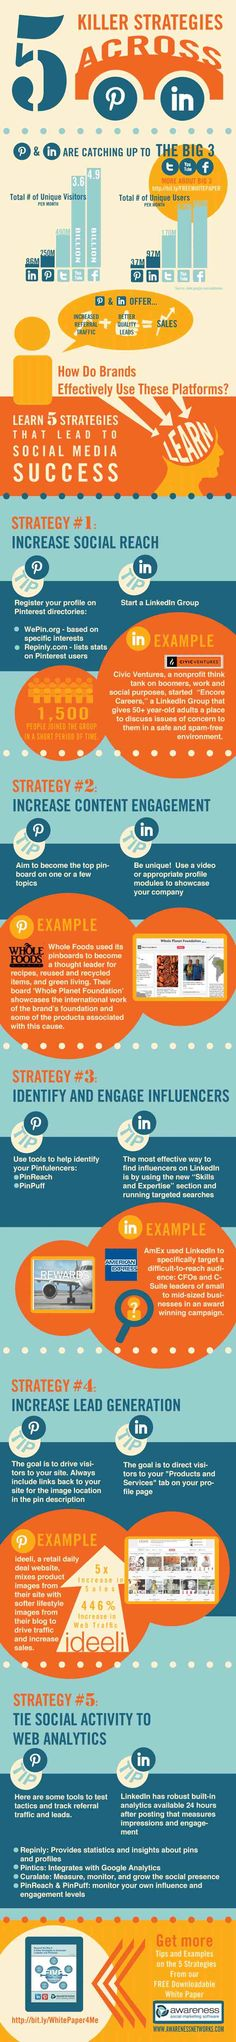 Strategies for Pinterest and LinkedIn